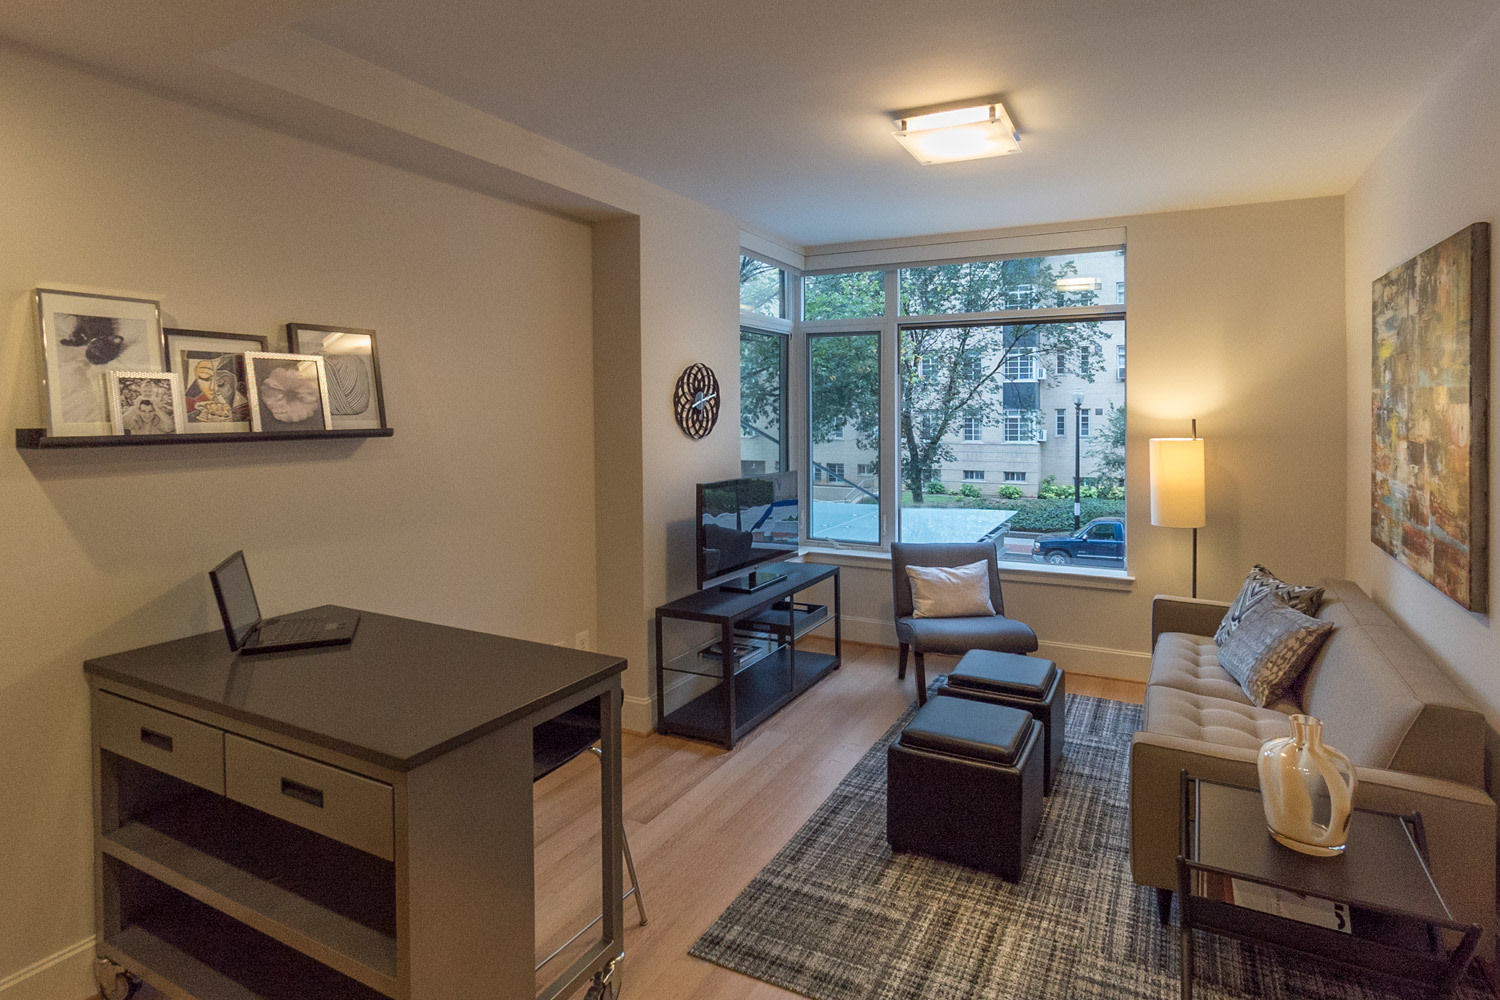 Best Apartments In Washington DC With Pictures - Apartments around washington dc